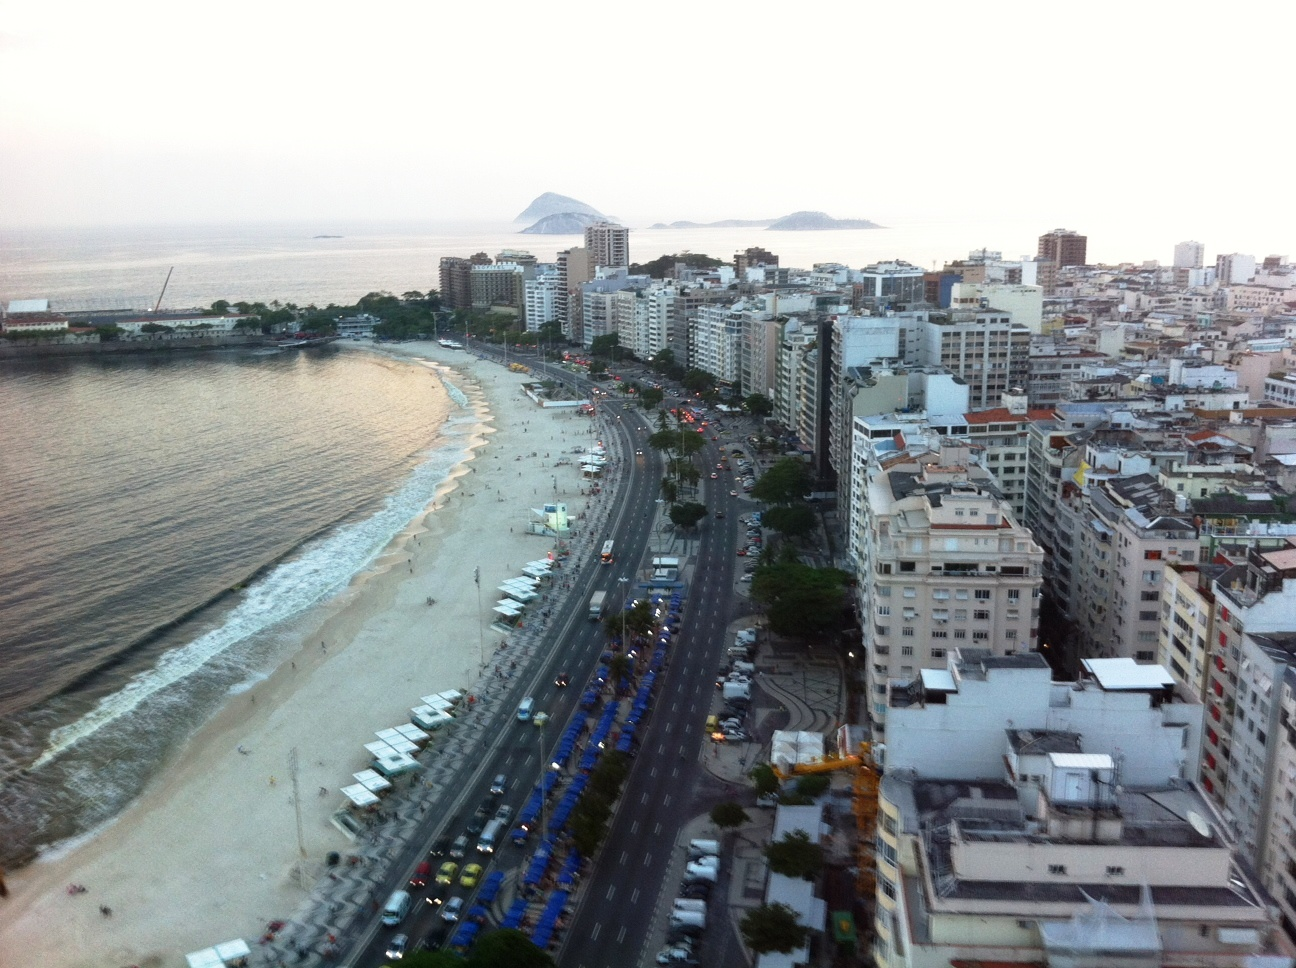 How I Stayed Safe While Traveling in Rio de Janeiro